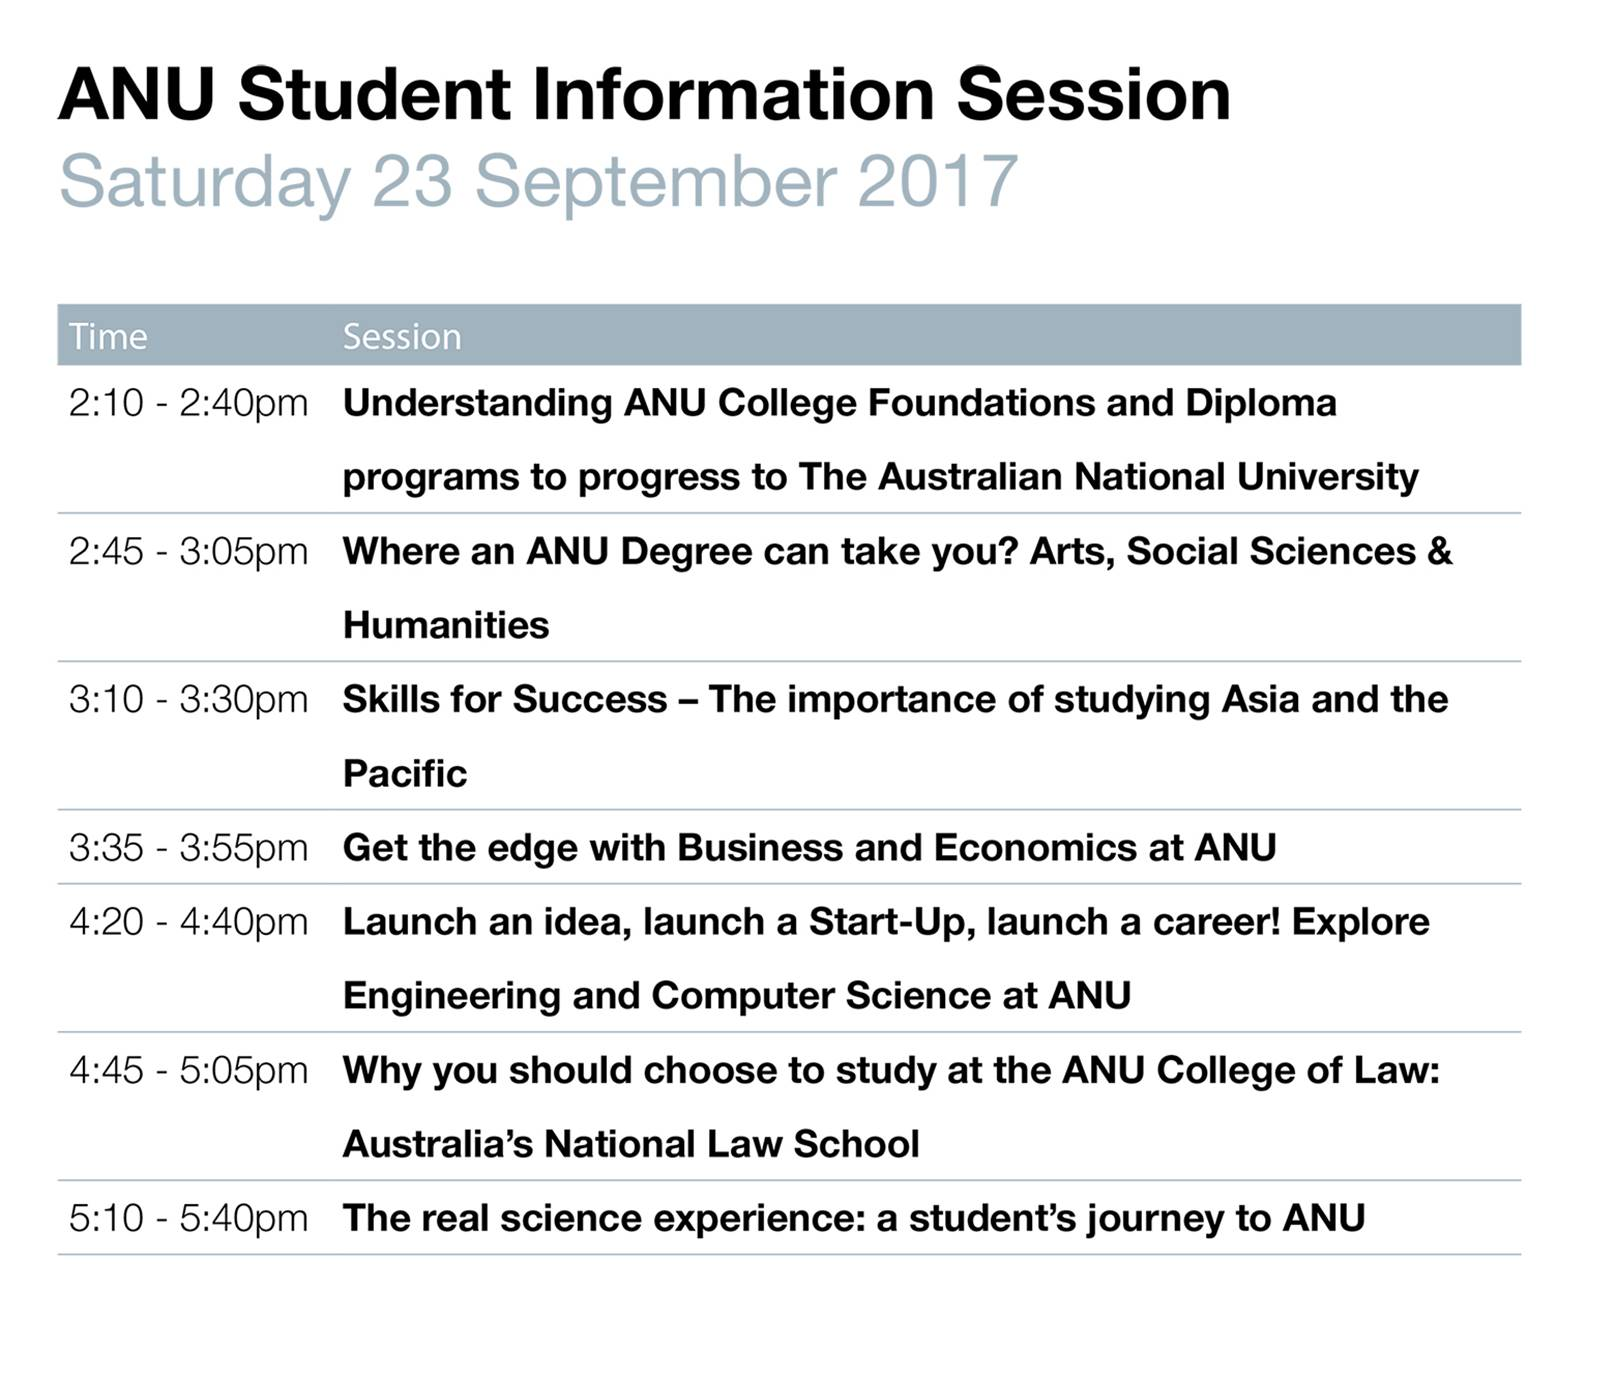 ANU session